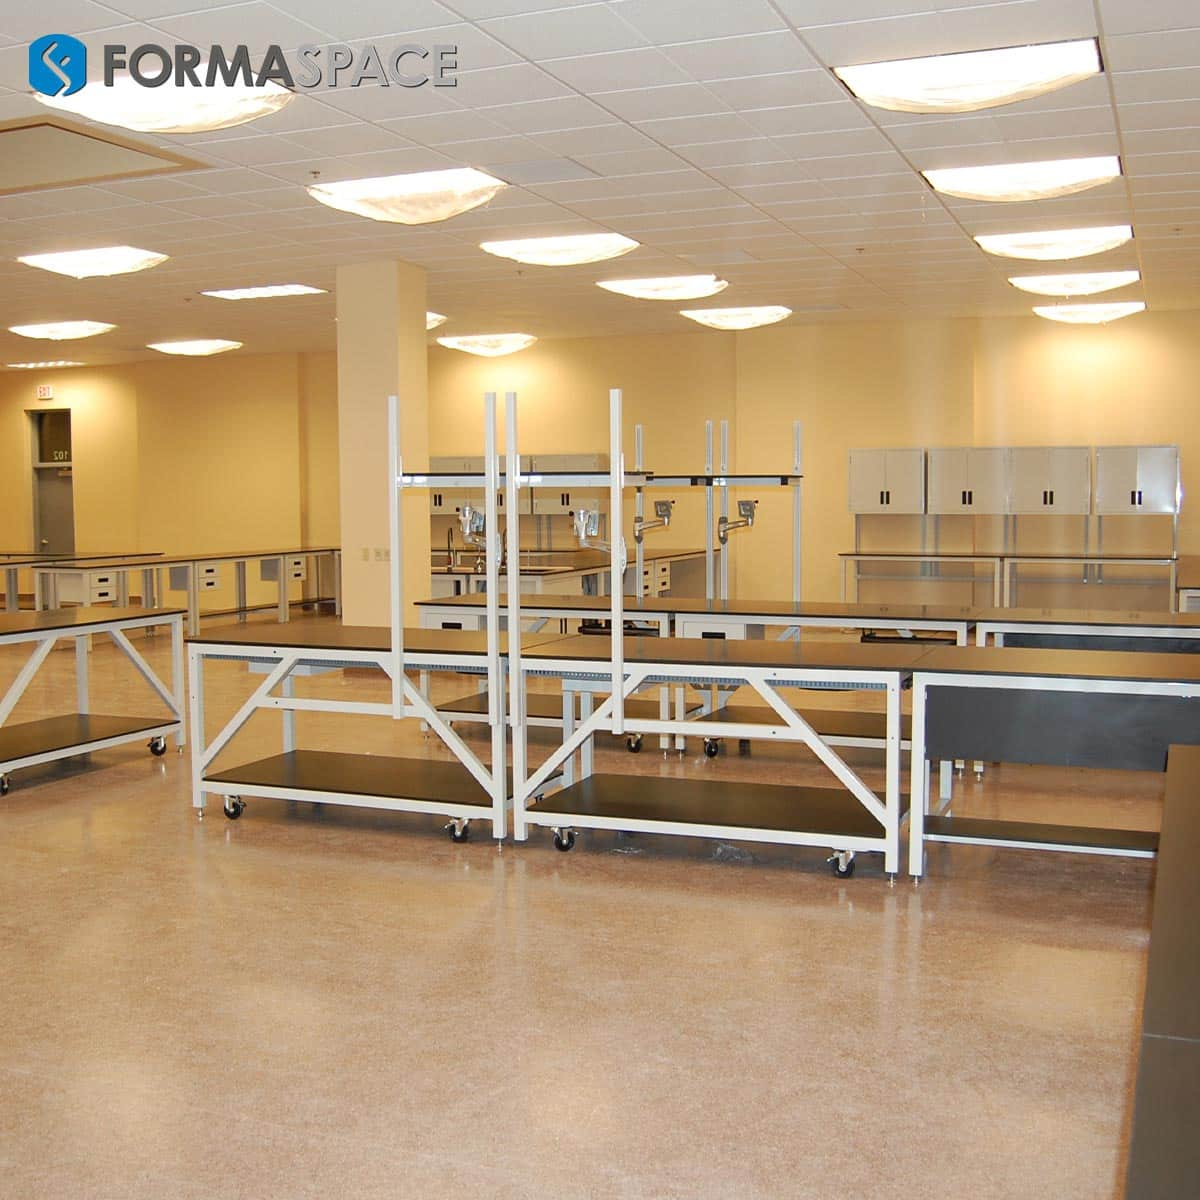 Modular Phenolic Workbenches with Upper Cabinetry